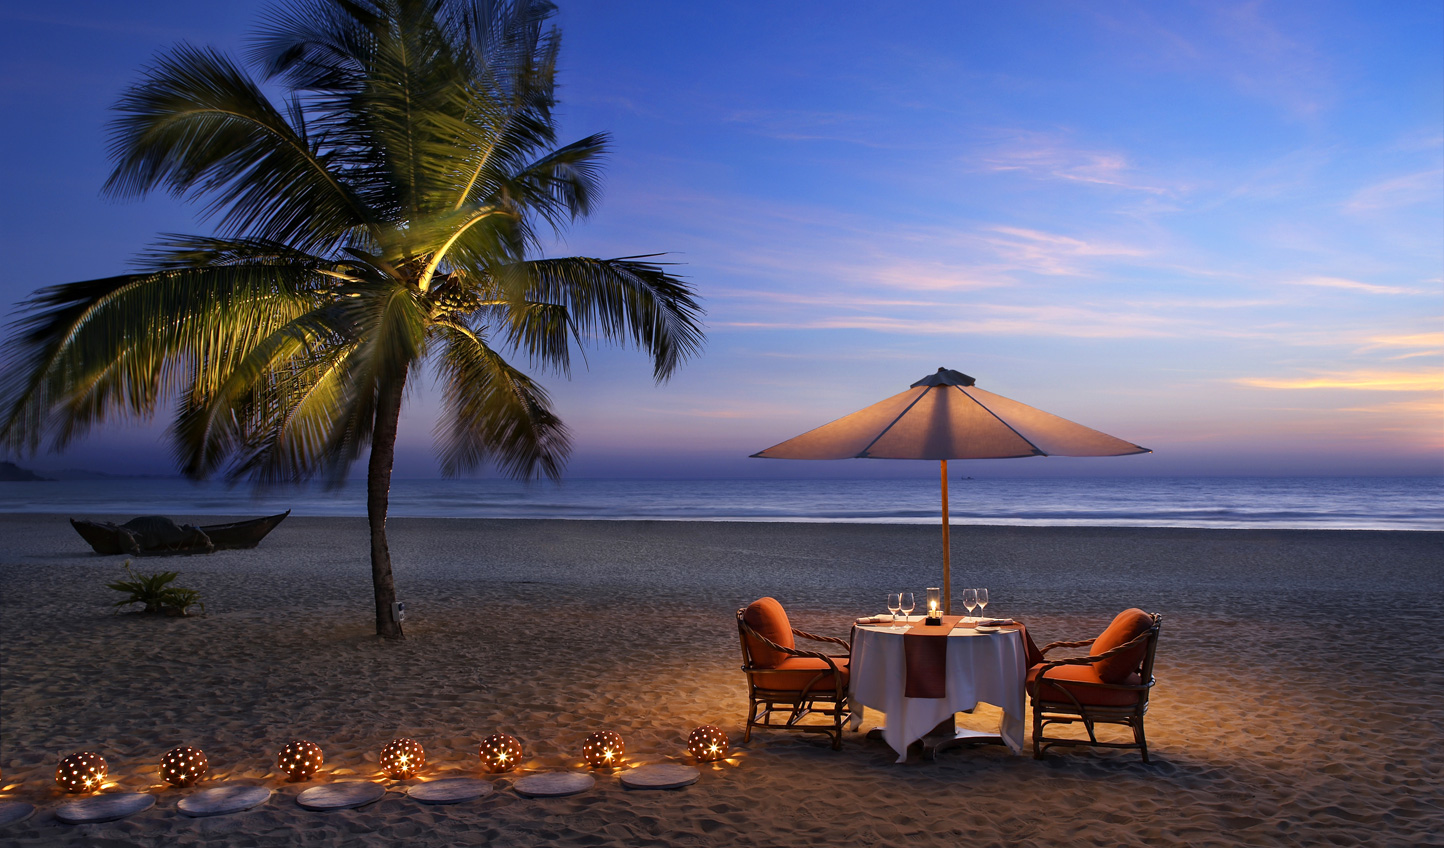 Escape to the serenity of The Leela Goa